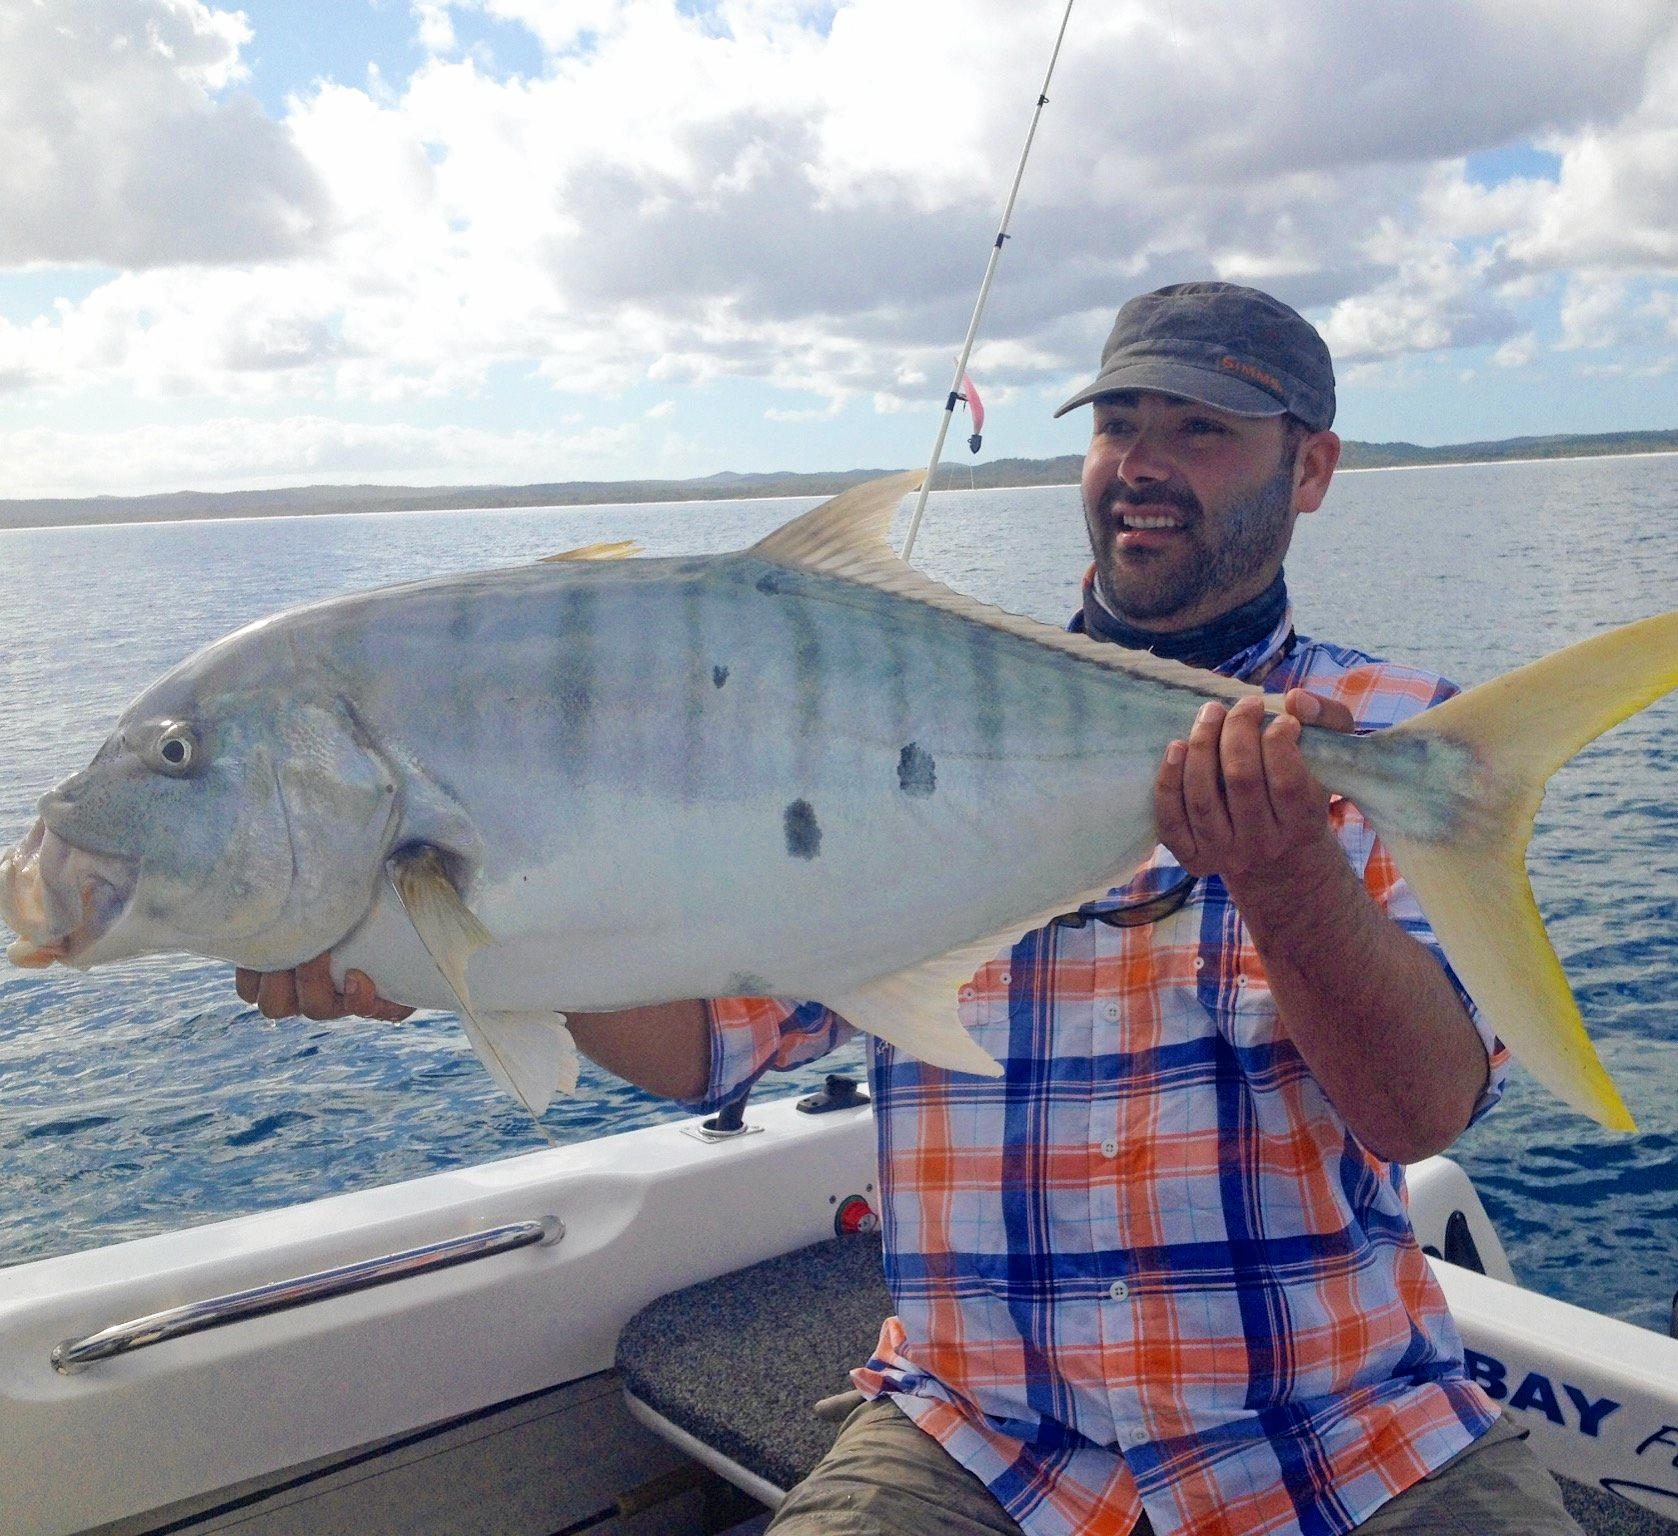 BIG HAUL: Kevin from Melbourne had a fight on his hands after hooking on to this solid golden trevally.